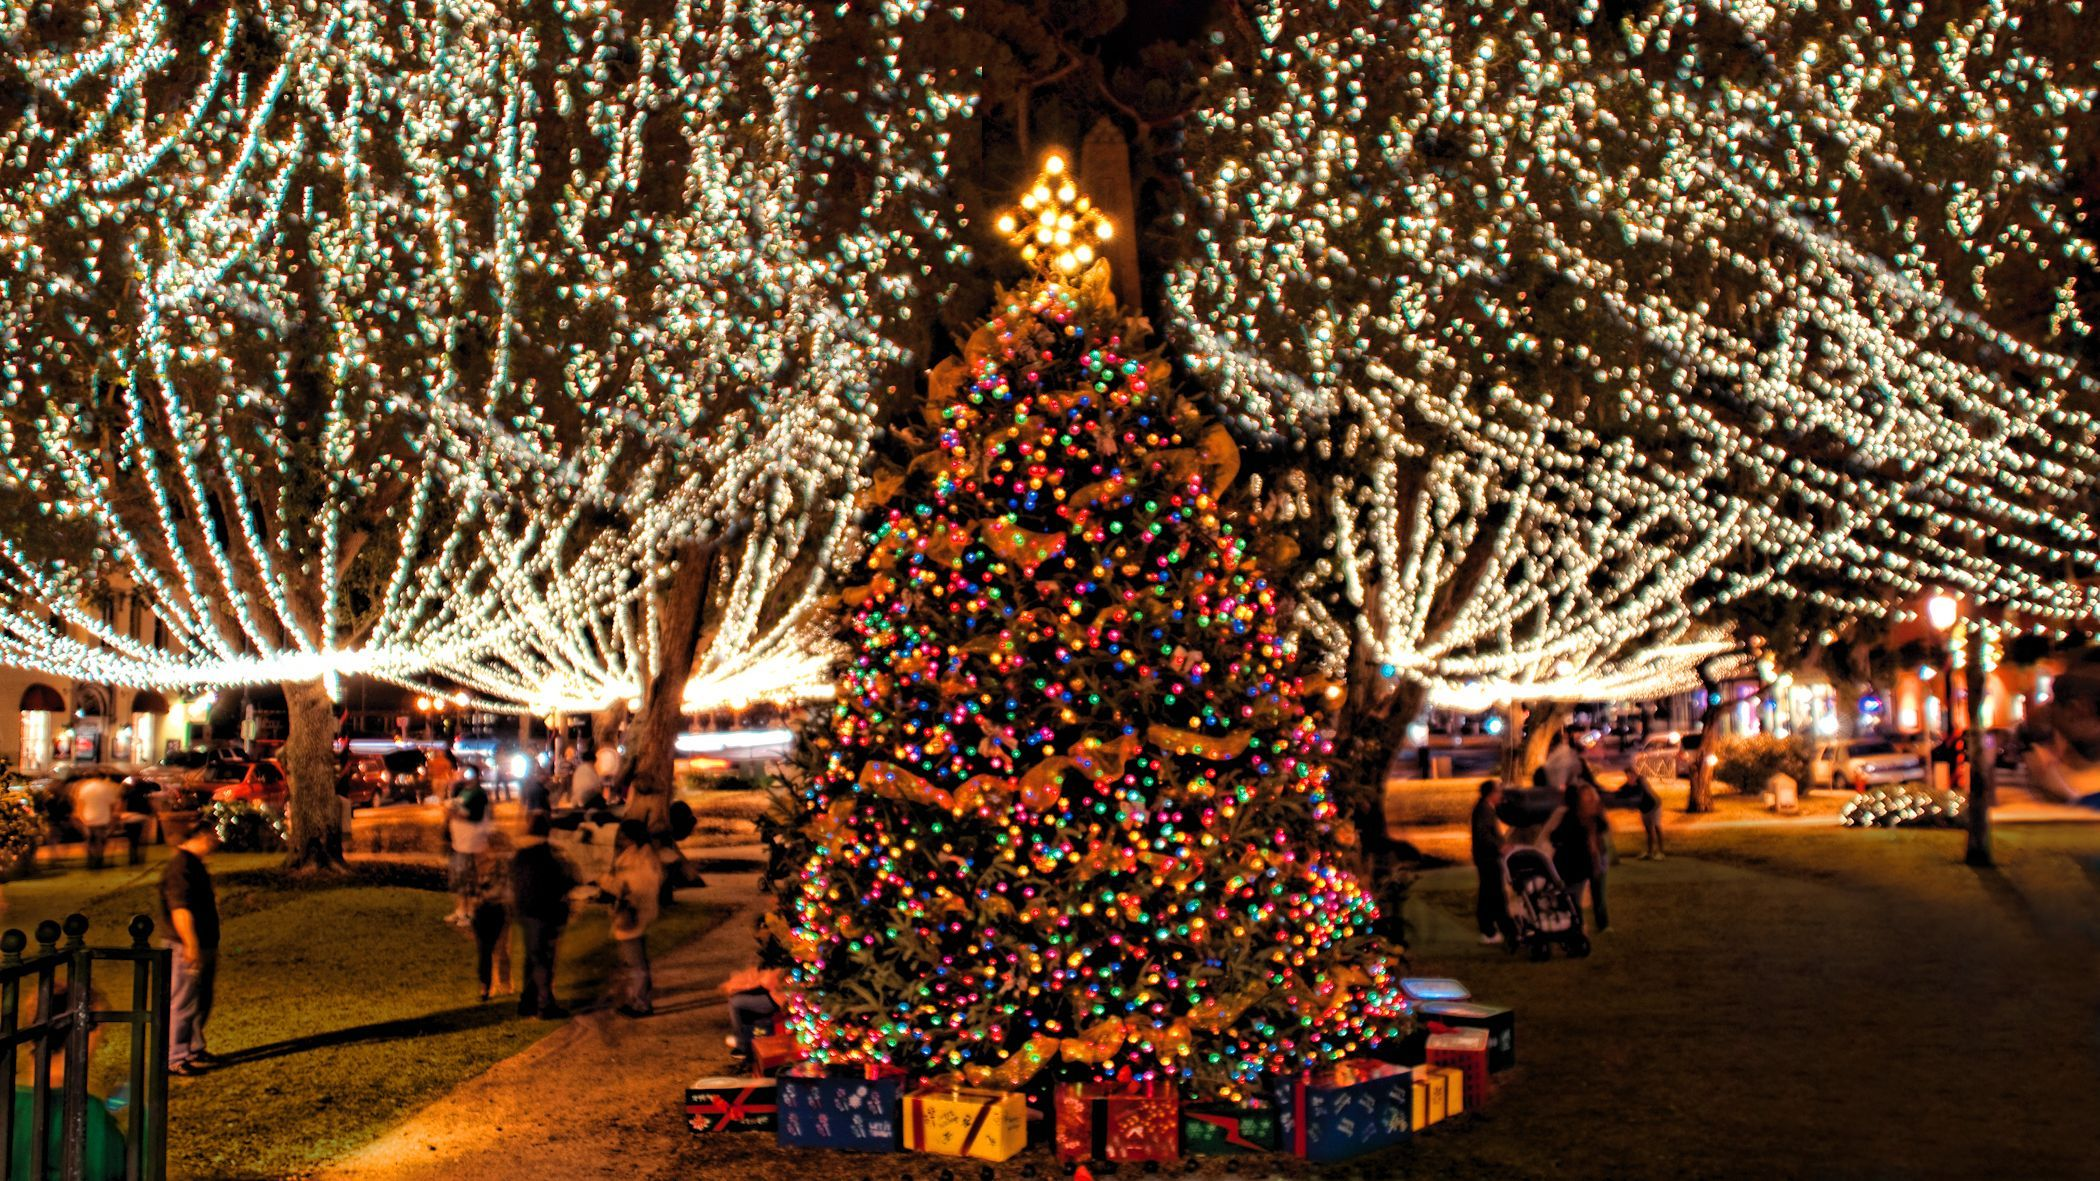 Christmas Lights In Jacksonville Fl 2020 St. Augustine's Nights of Lights will begin earlier this year in